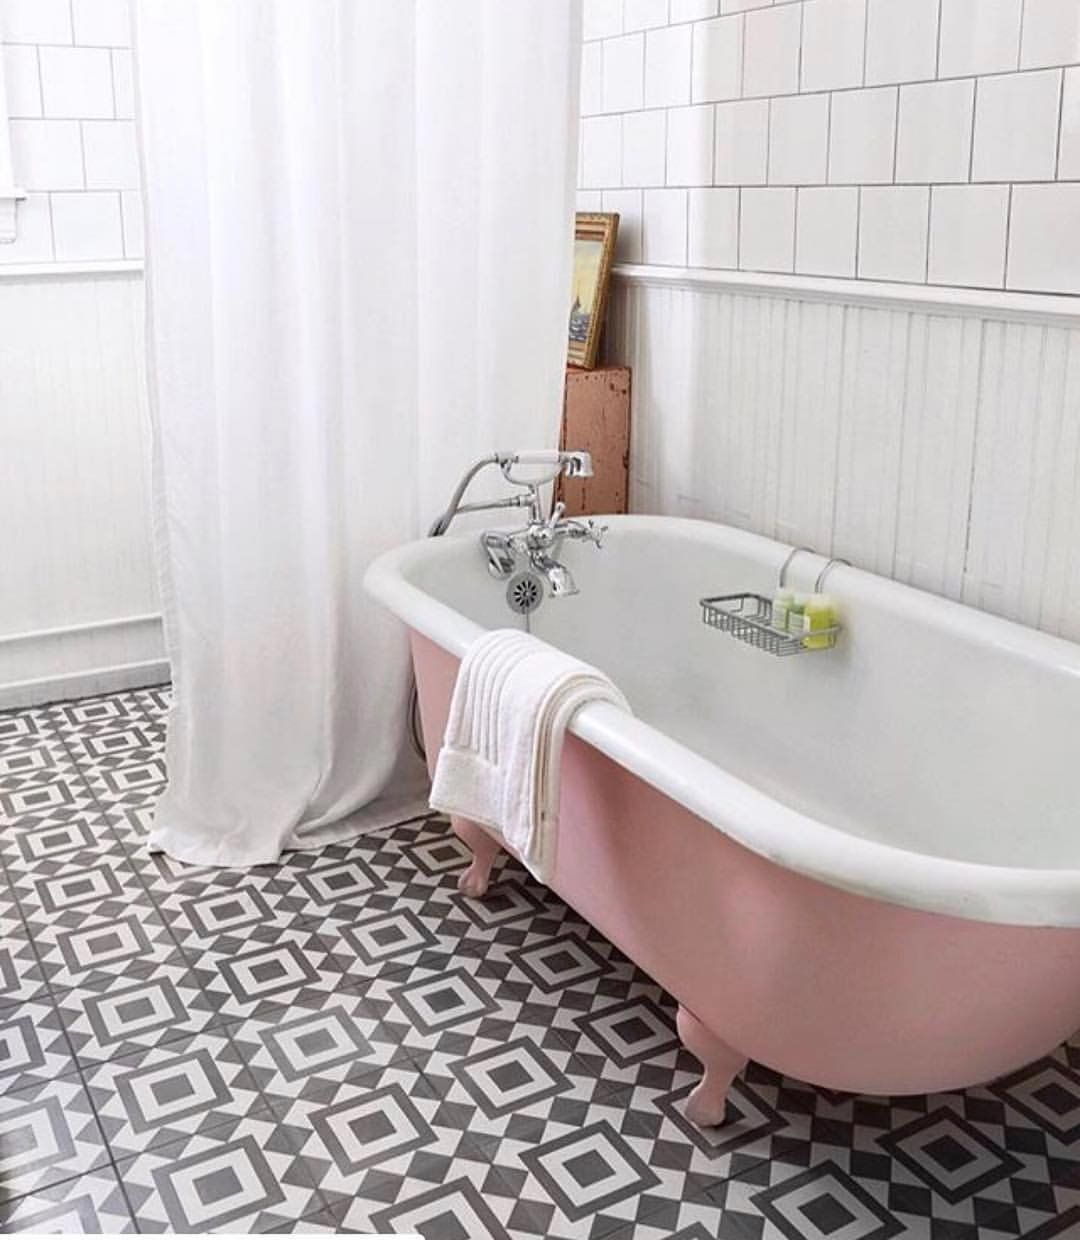 Mint The Spring Summer 2020 Colour Trend Pink Tub Shabby Chic Bathroom Pink Bathroom Tiles